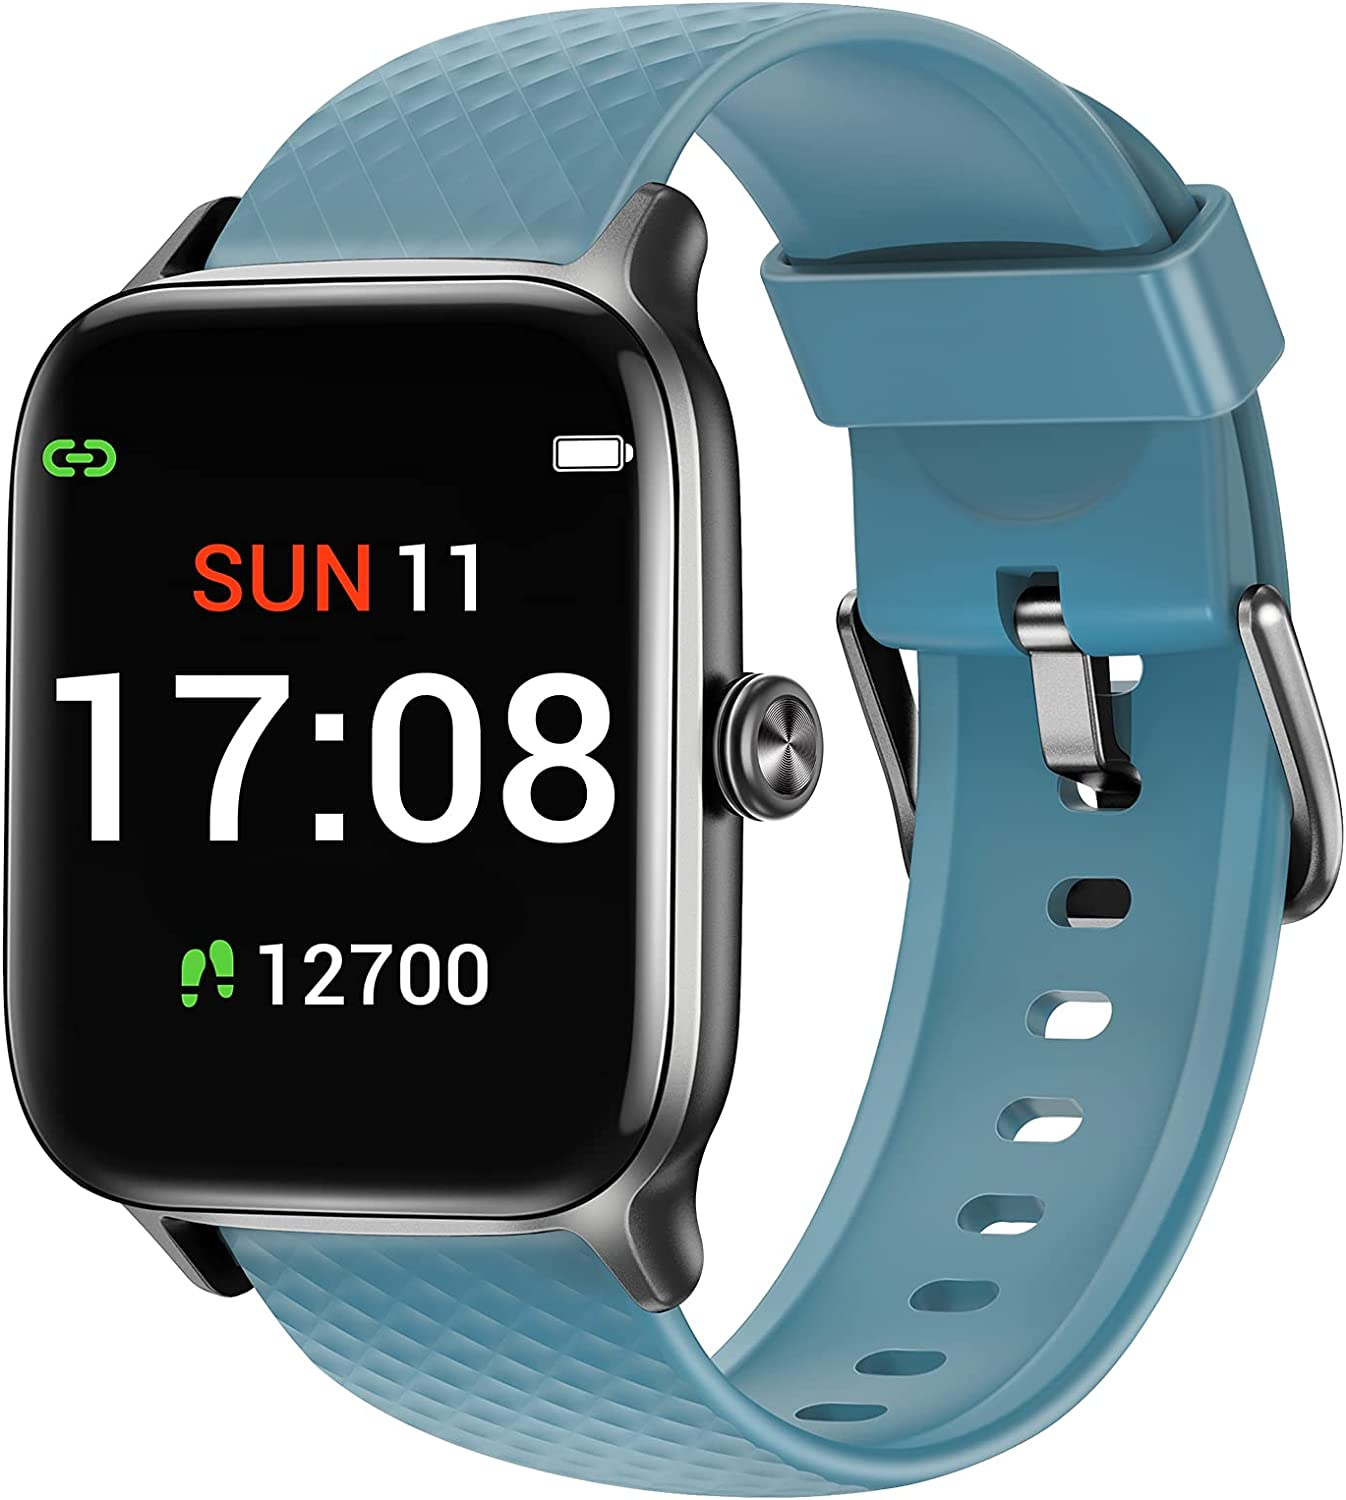 Letsfit EW1 Smart Watch Compatible with iPhone and Android Phones, Fitness Tracker with Heart Rate Monitor, Sleep Monitor & Blood Oxygen Saturation, 5ATM Waterproof Smartwatch for Women Men-Blue